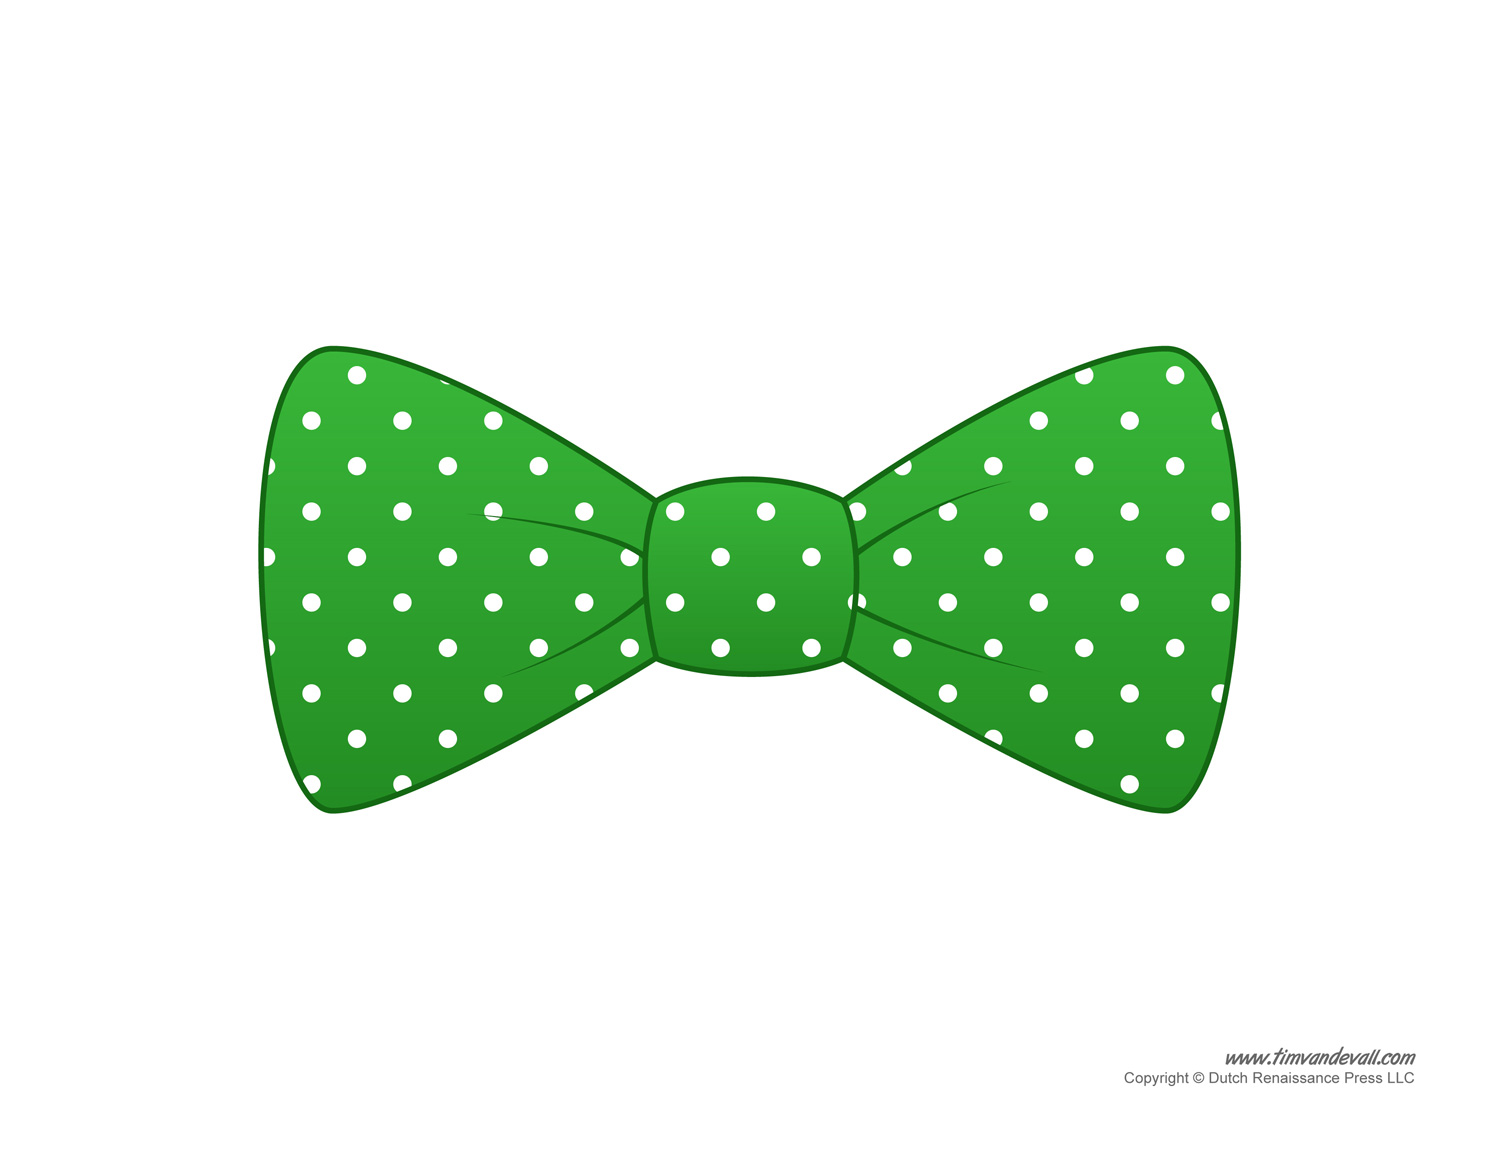 clipart bow tie outline - photo #17